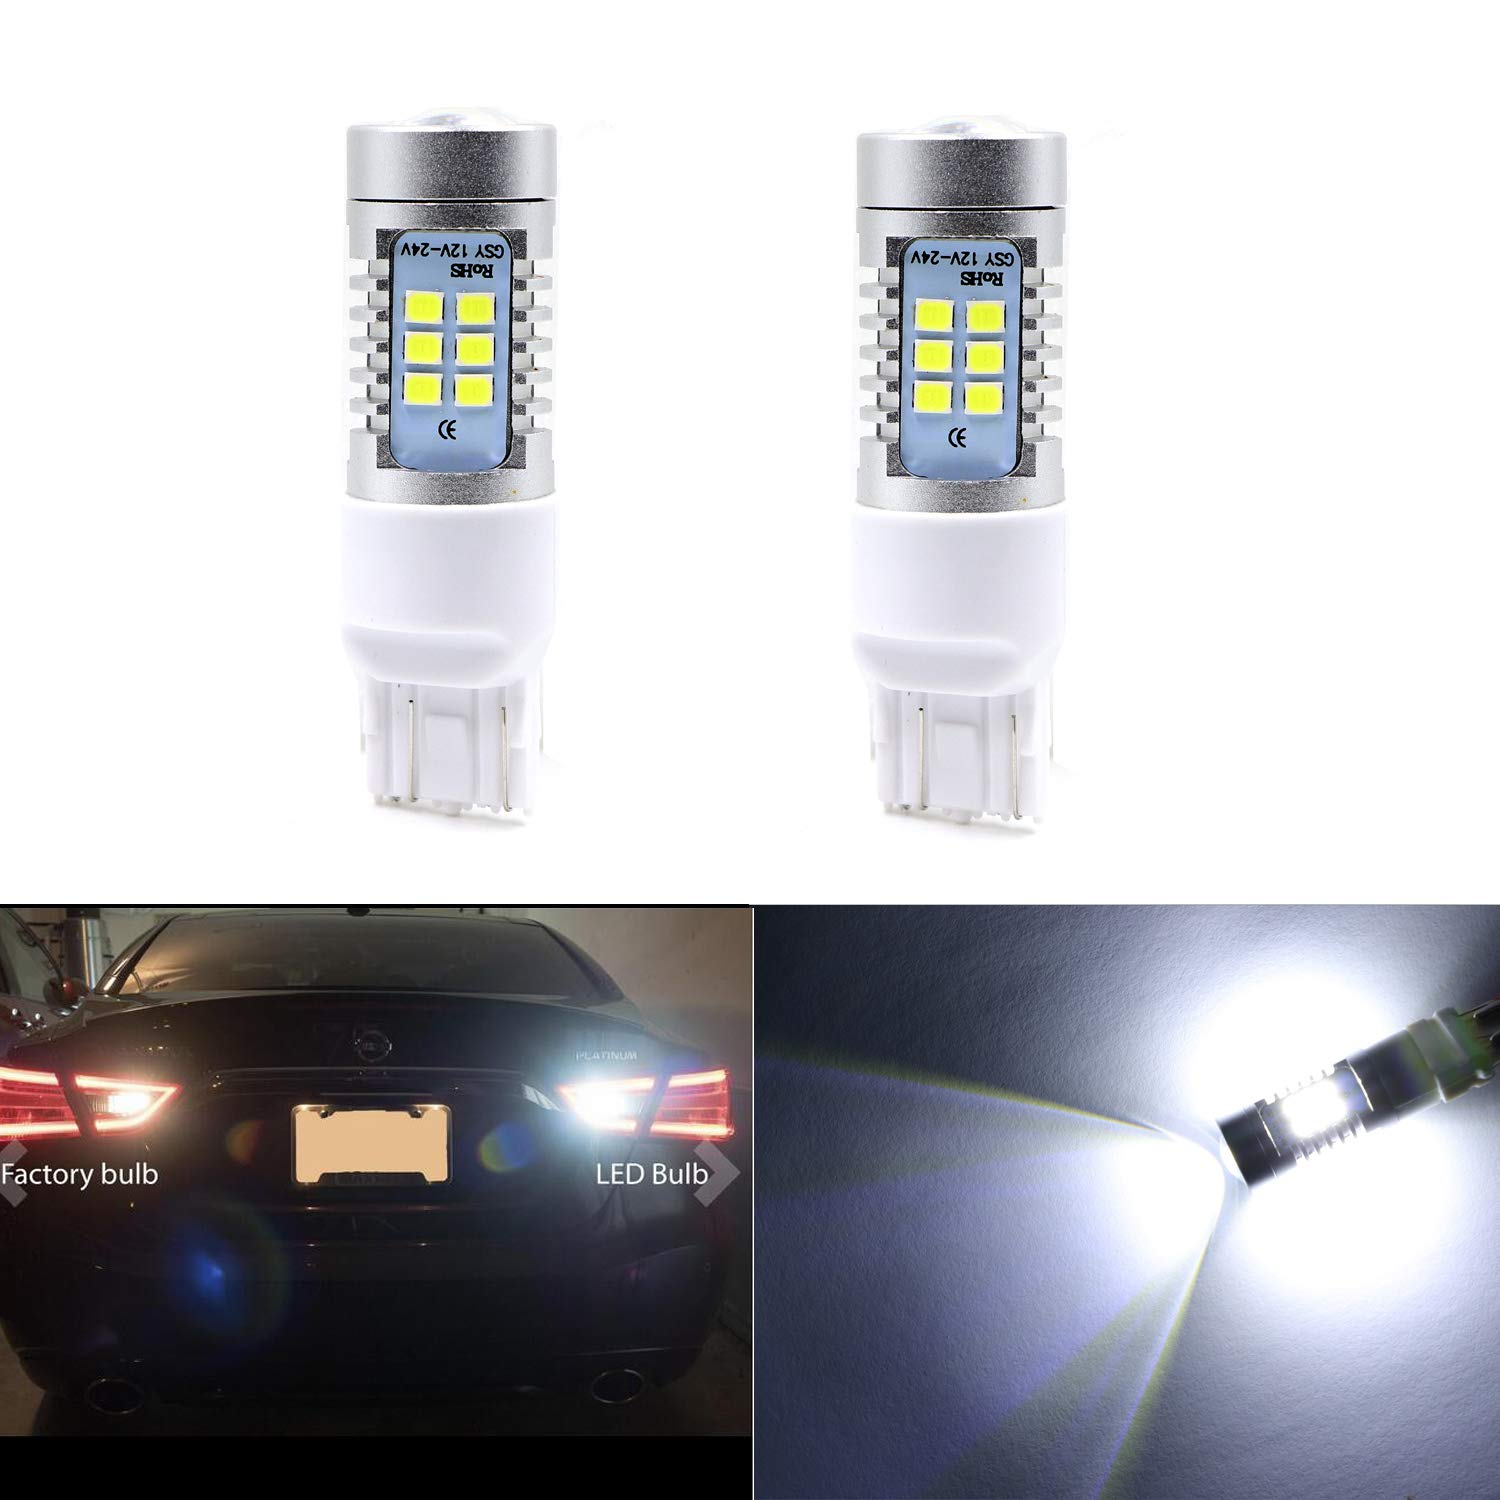 Extremely Bright LED Back Up Lights Reverse Lights 7440 7441 7443 7444 w/21 SMD Bulbs, White-6000K (Pack of 2) Youxmoto